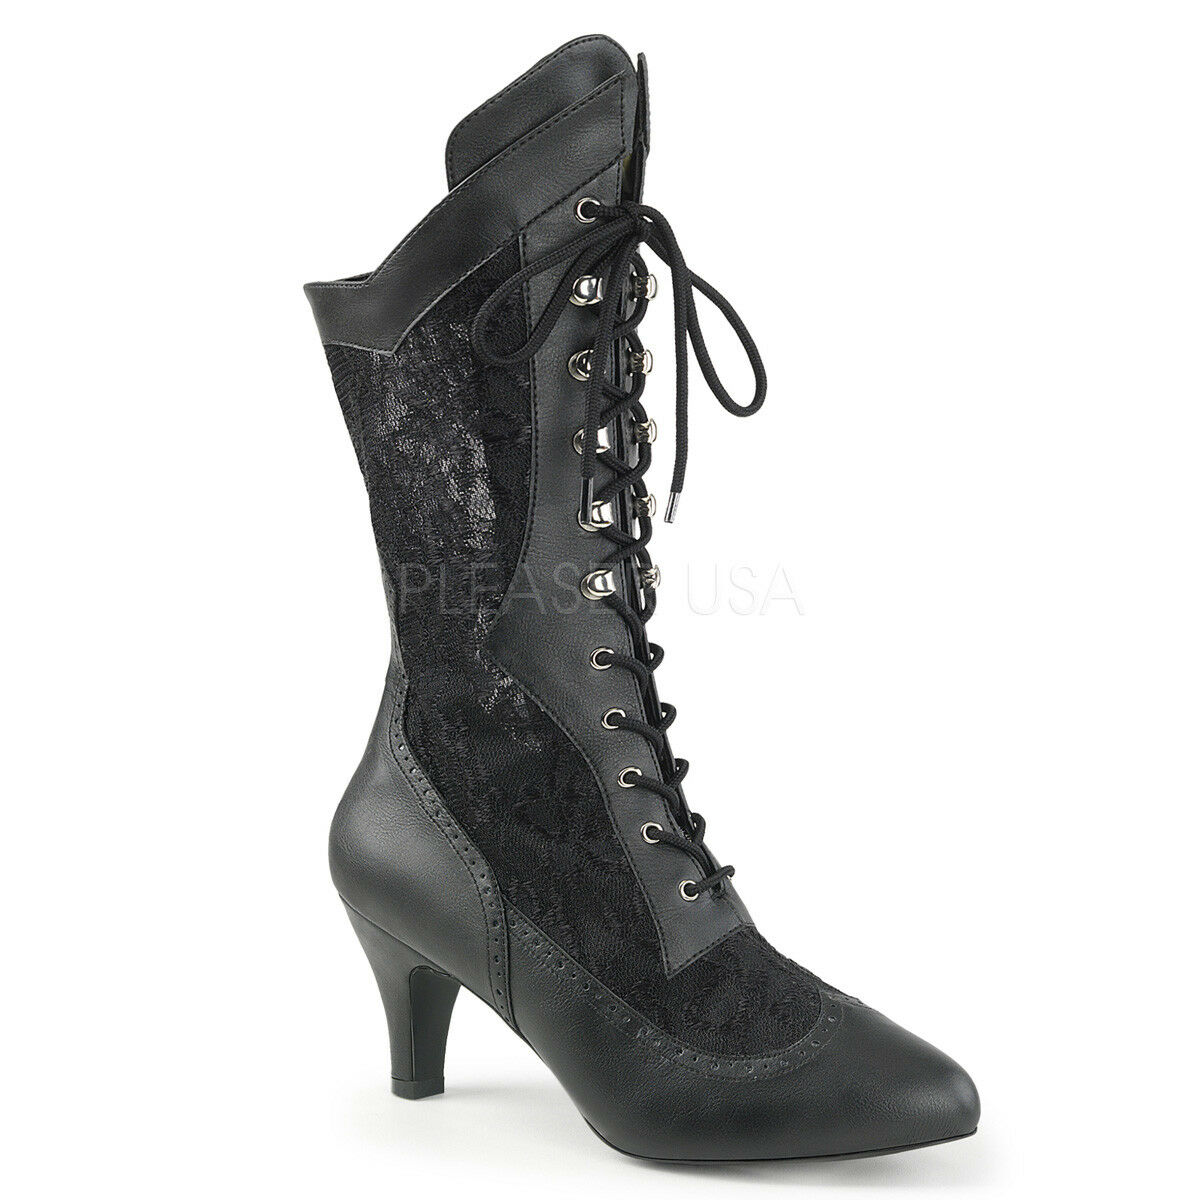 DIVINE-1050 3  WIDE WIDTH-SHAFT GRANNY VINTAGE COSTUME VICTORIAN  MID ANKLE BOOT